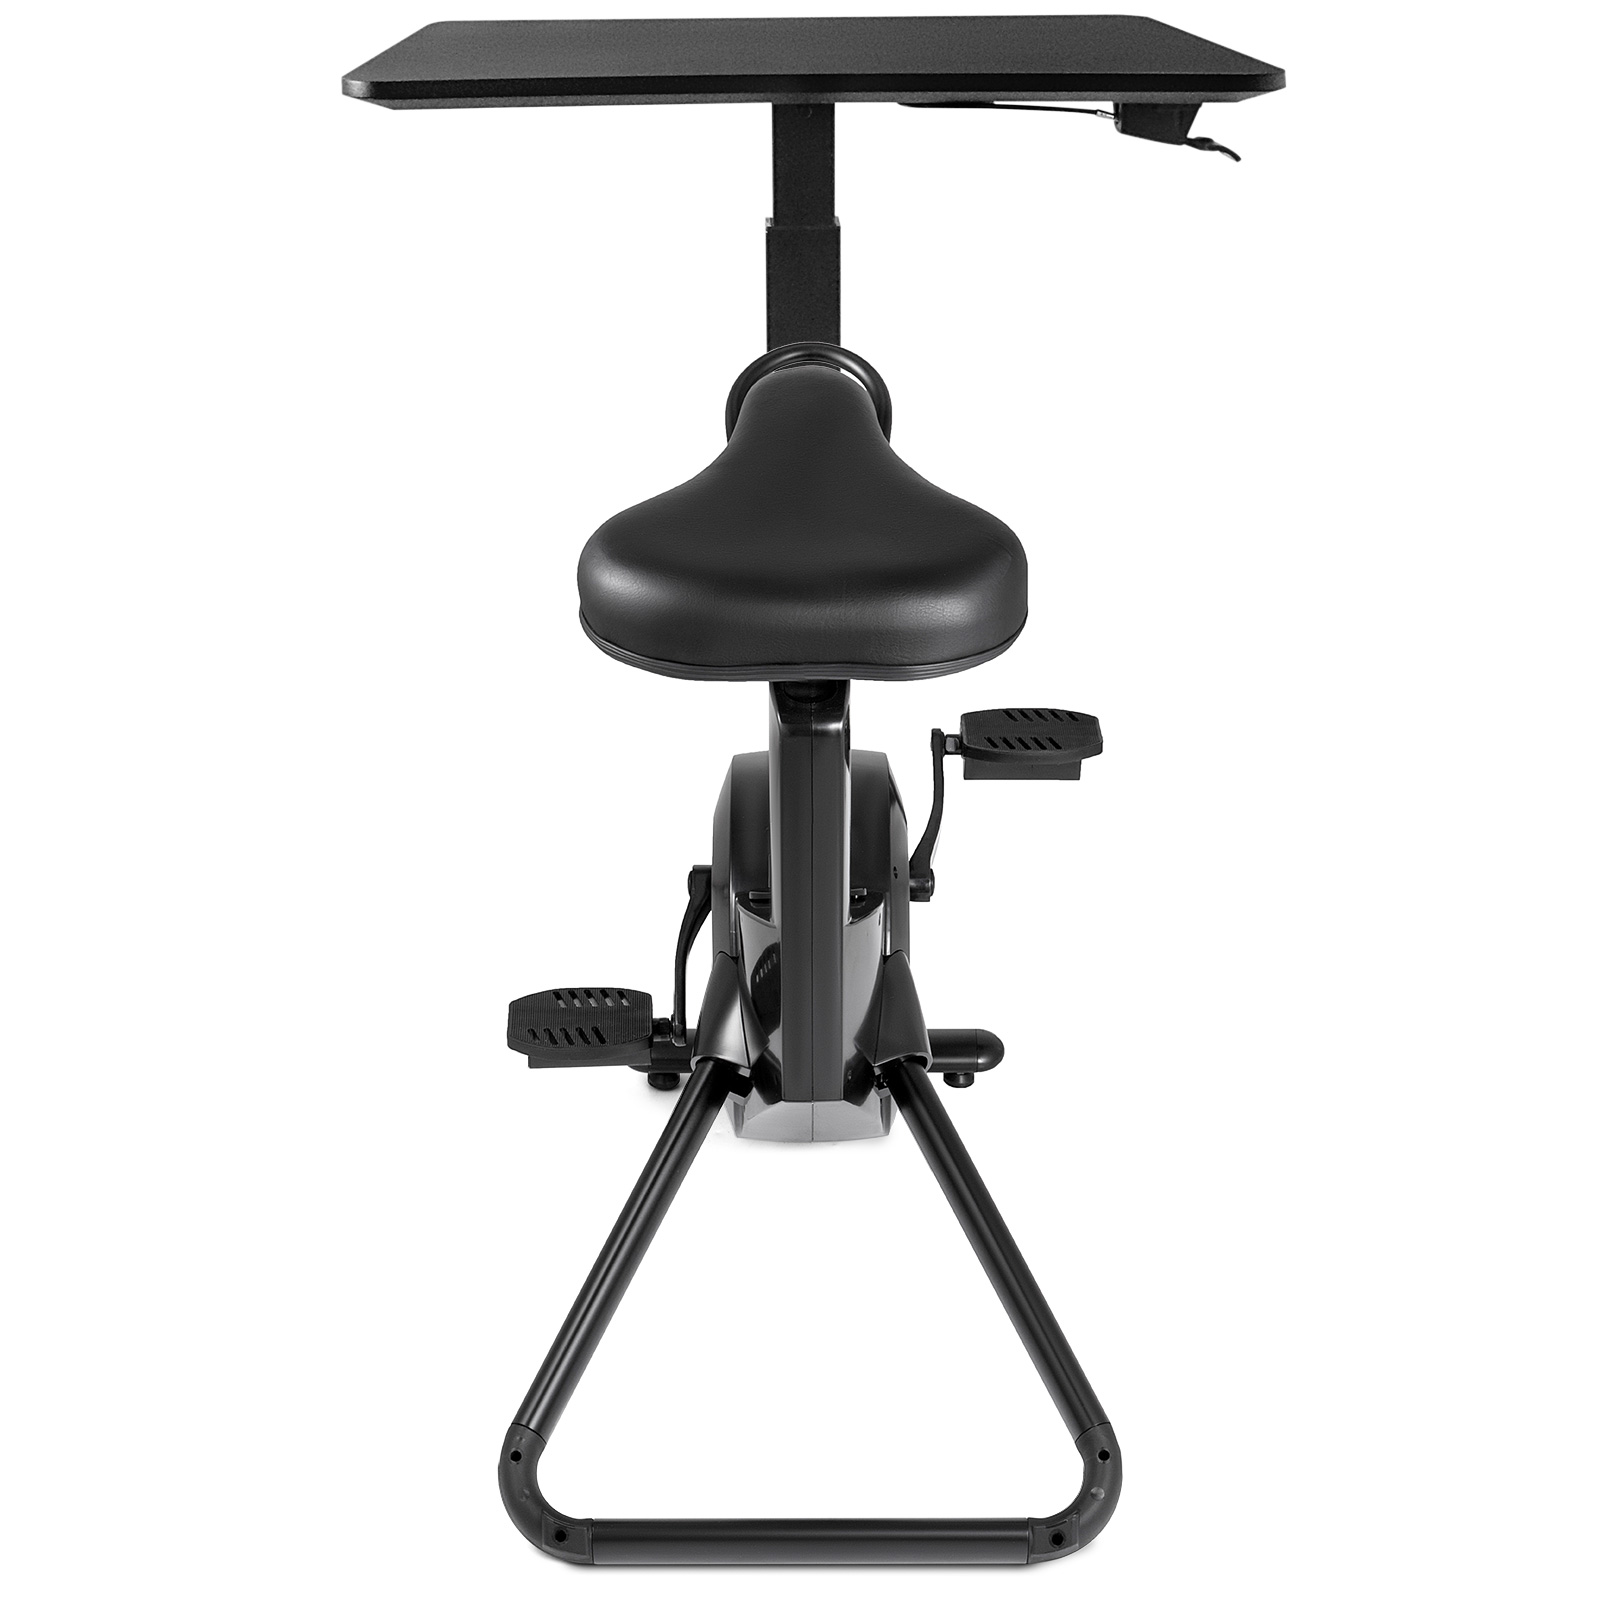 Multi-style-Magnetic-Exercise-Bike-office-Bicycle-under-Desk-Fitness-Cardio miniature 129